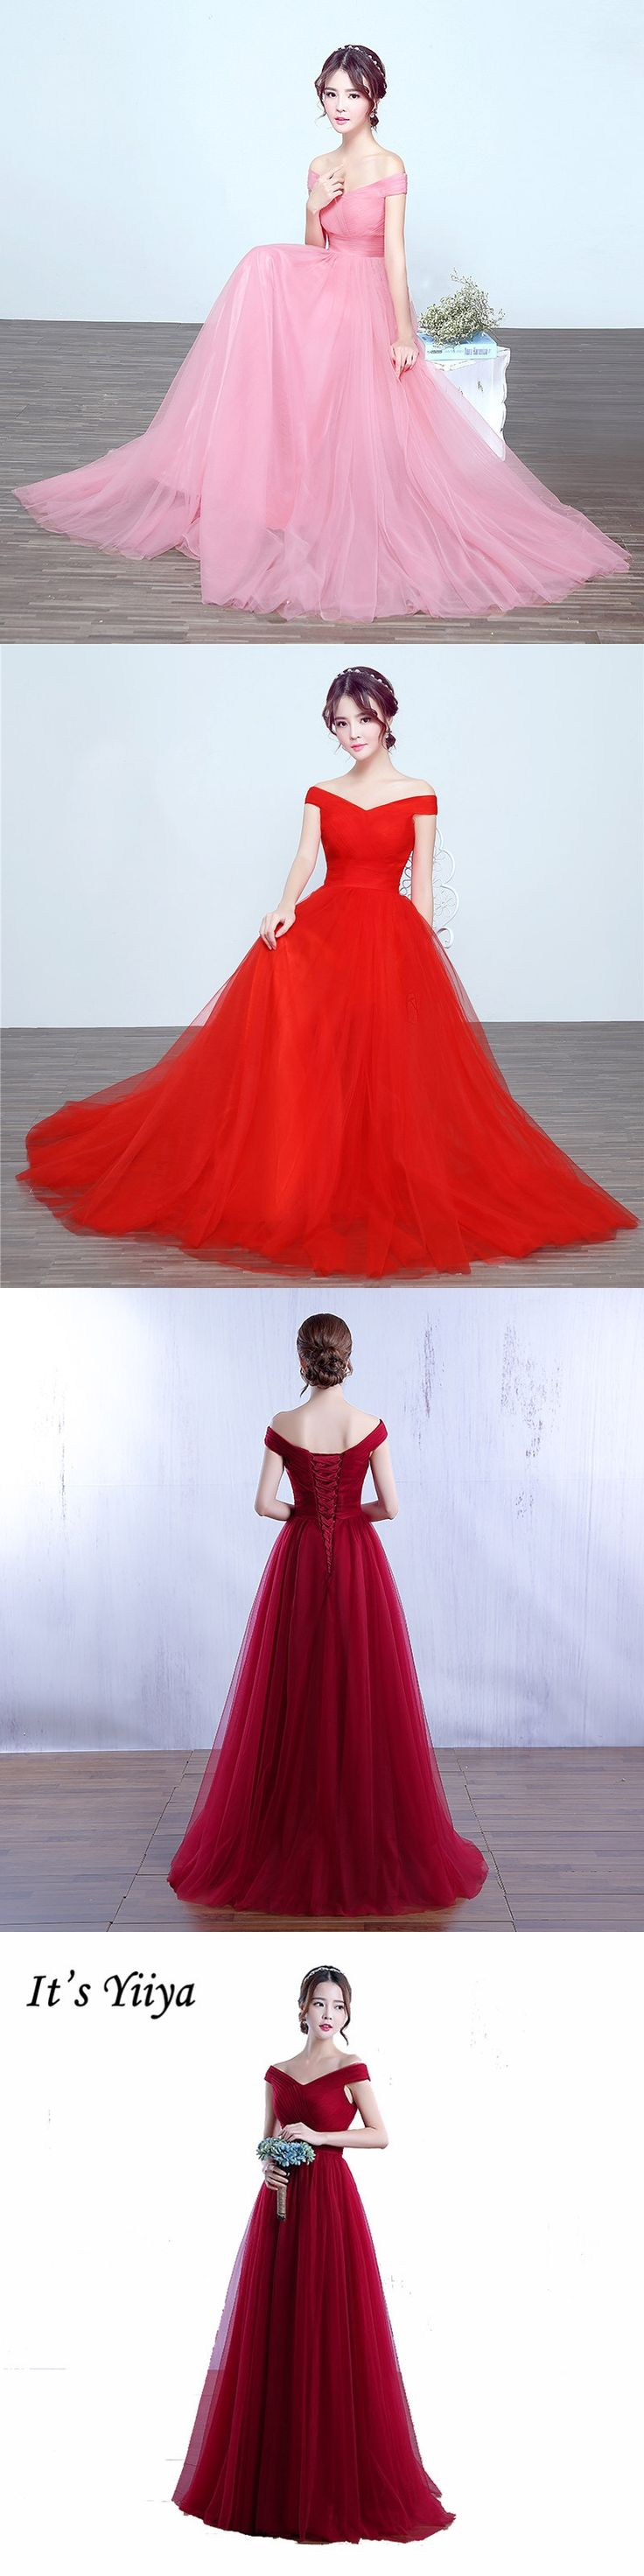 78 best wedding party dress images on pinterest its yiiya sleeveless red clare pink strapless formal dresses sex long customized bridesmaid gowns fashion frocks ombrellifo Choice Image